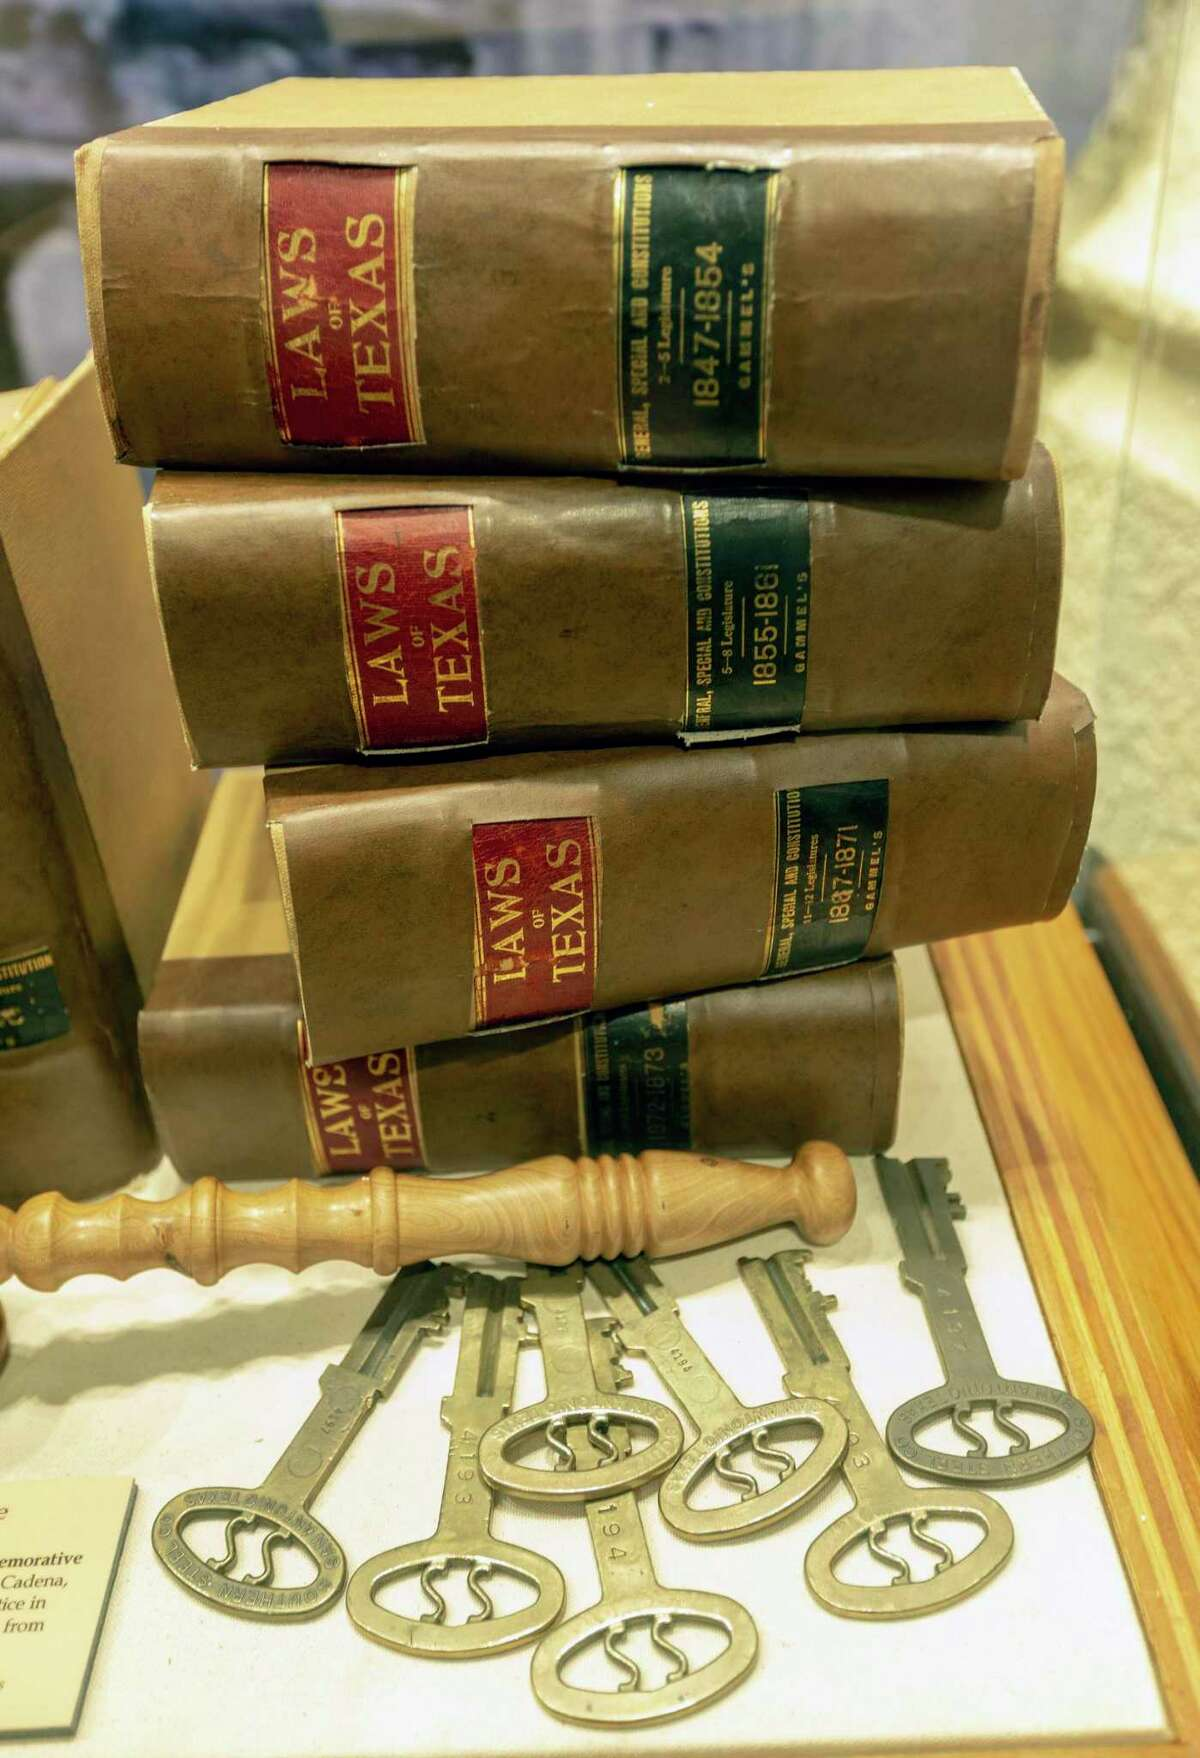 An exhibit seen Oct. 8, 2019 at the newly opened Bexar County Heritage Center in the Bexar County Courthouse exhibits old lawbooks and antique jail cell keys. The museum-like center features a series of exhibits that take visitors through the county's history.